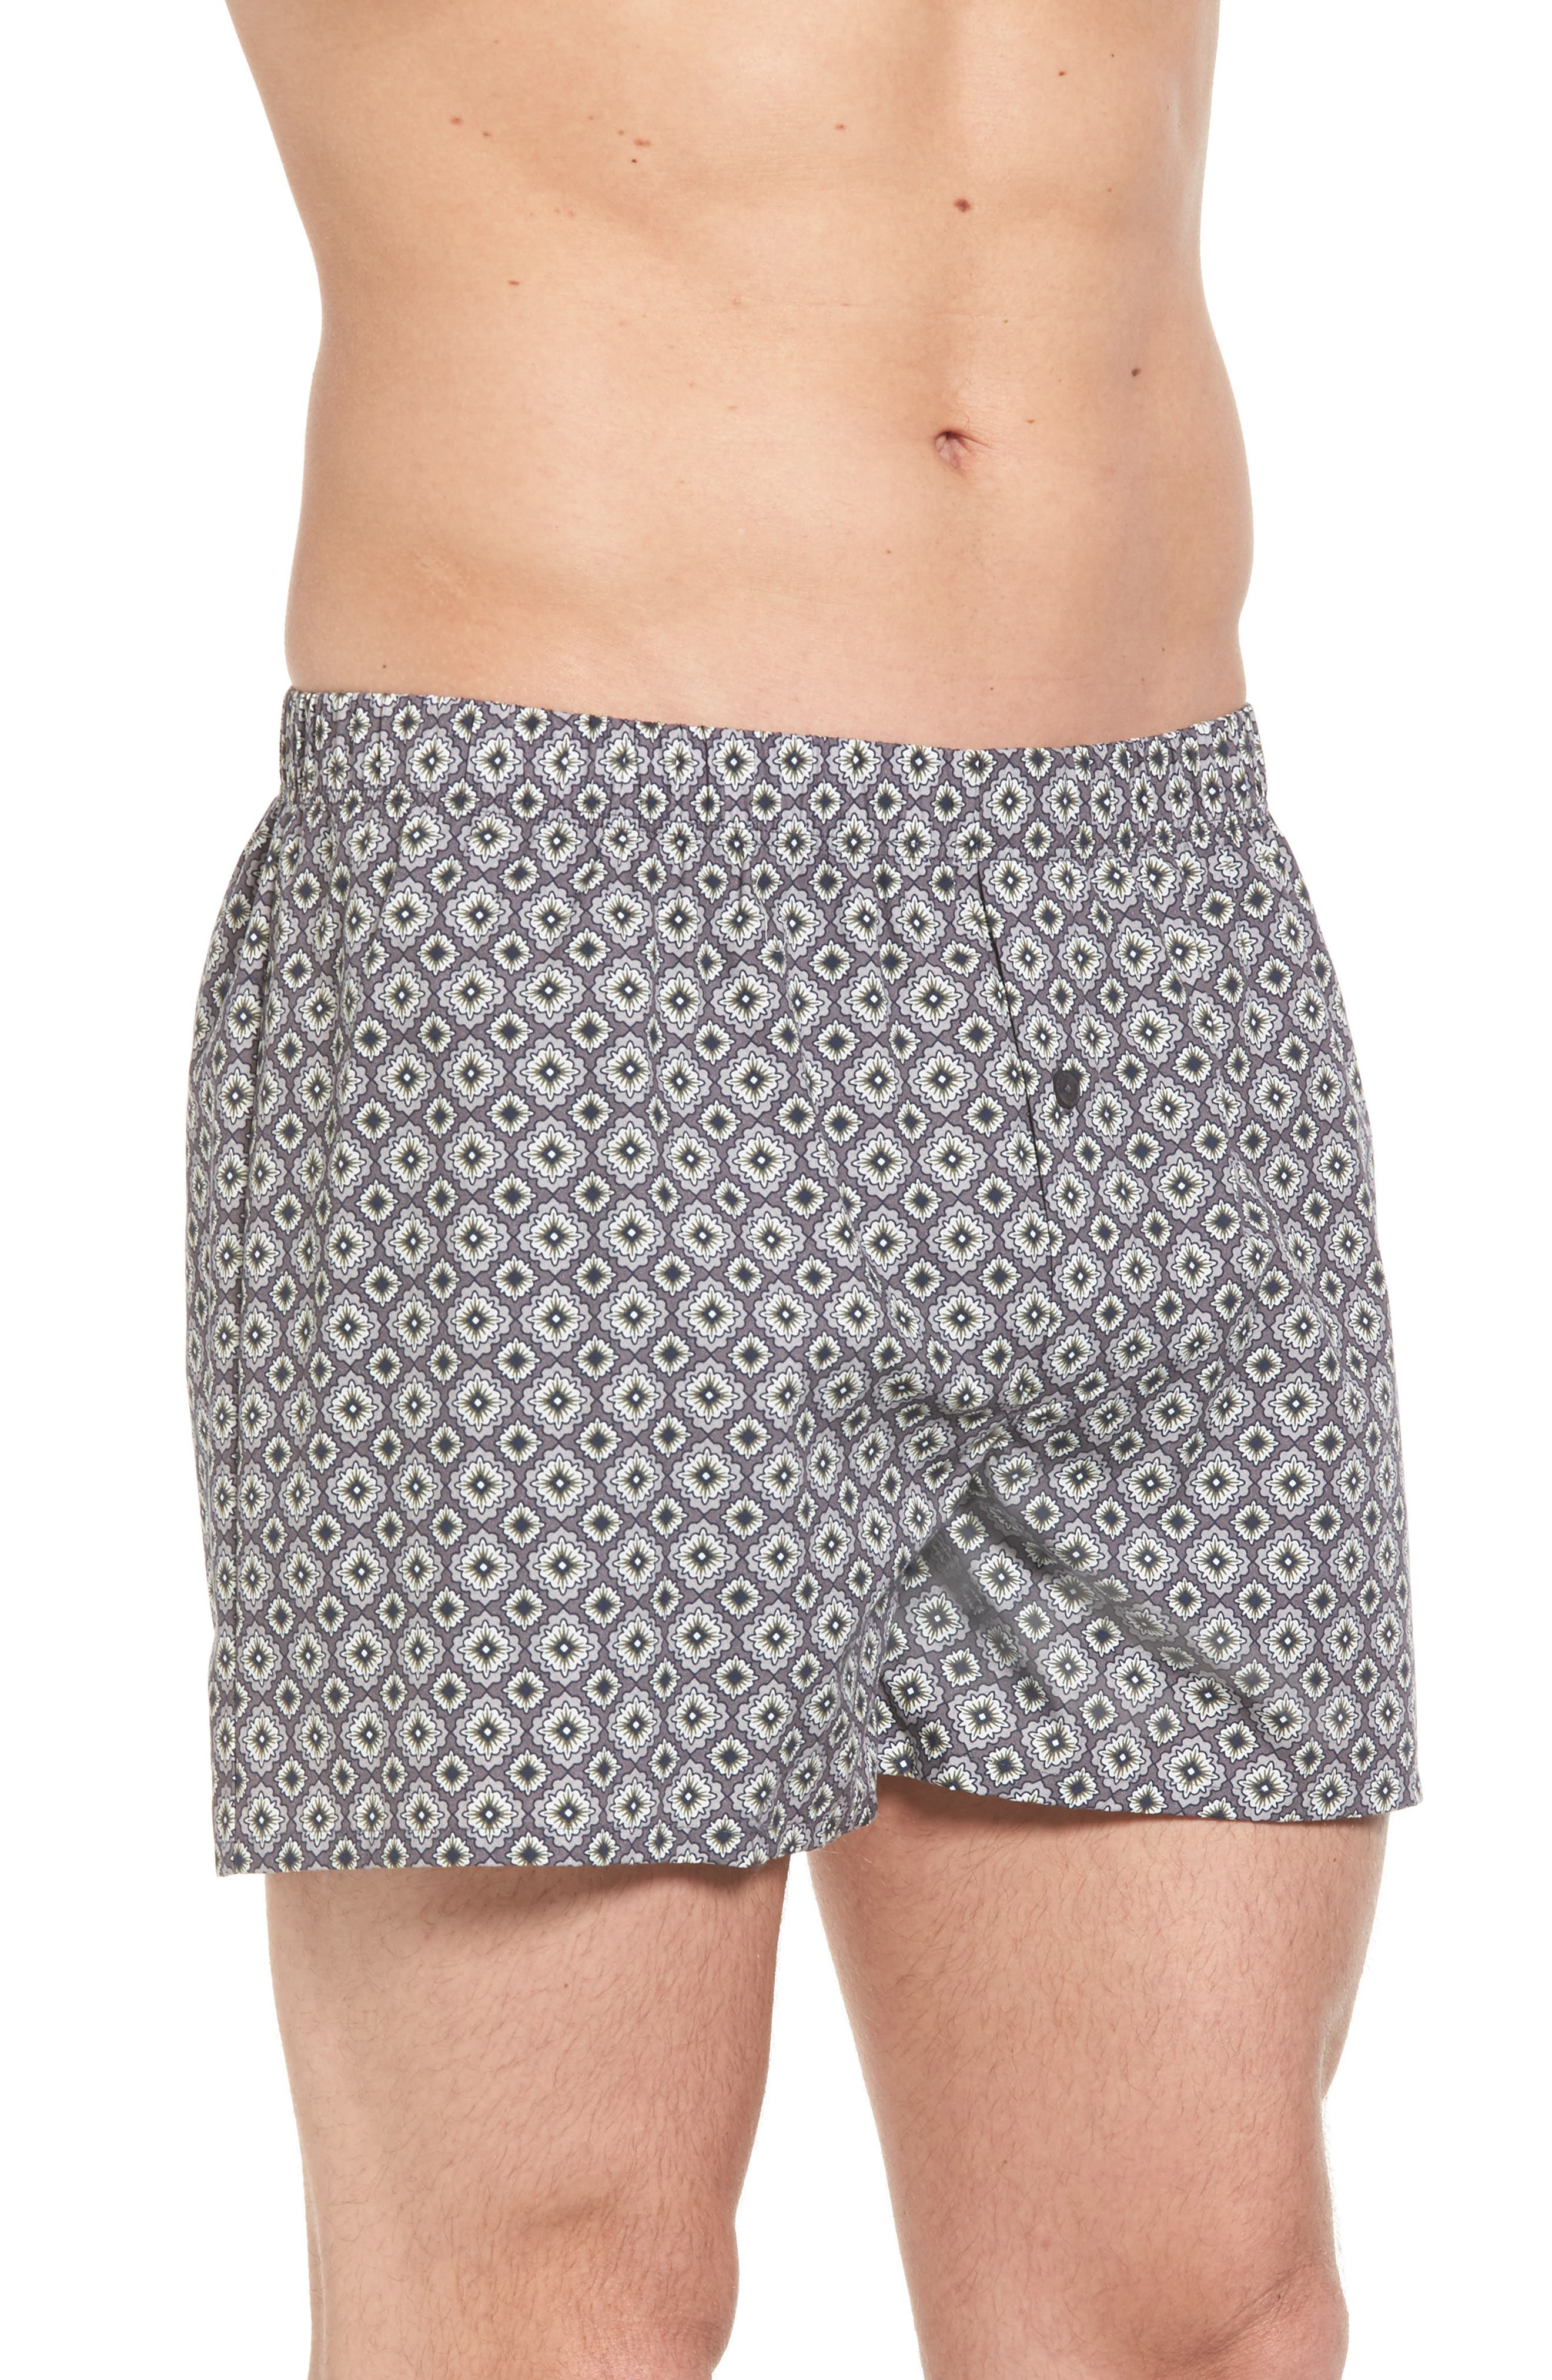 2-Pack Fancy Woven Boxers,                             Alternate thumbnail 4, color,                             Grey/ Squared Flowers